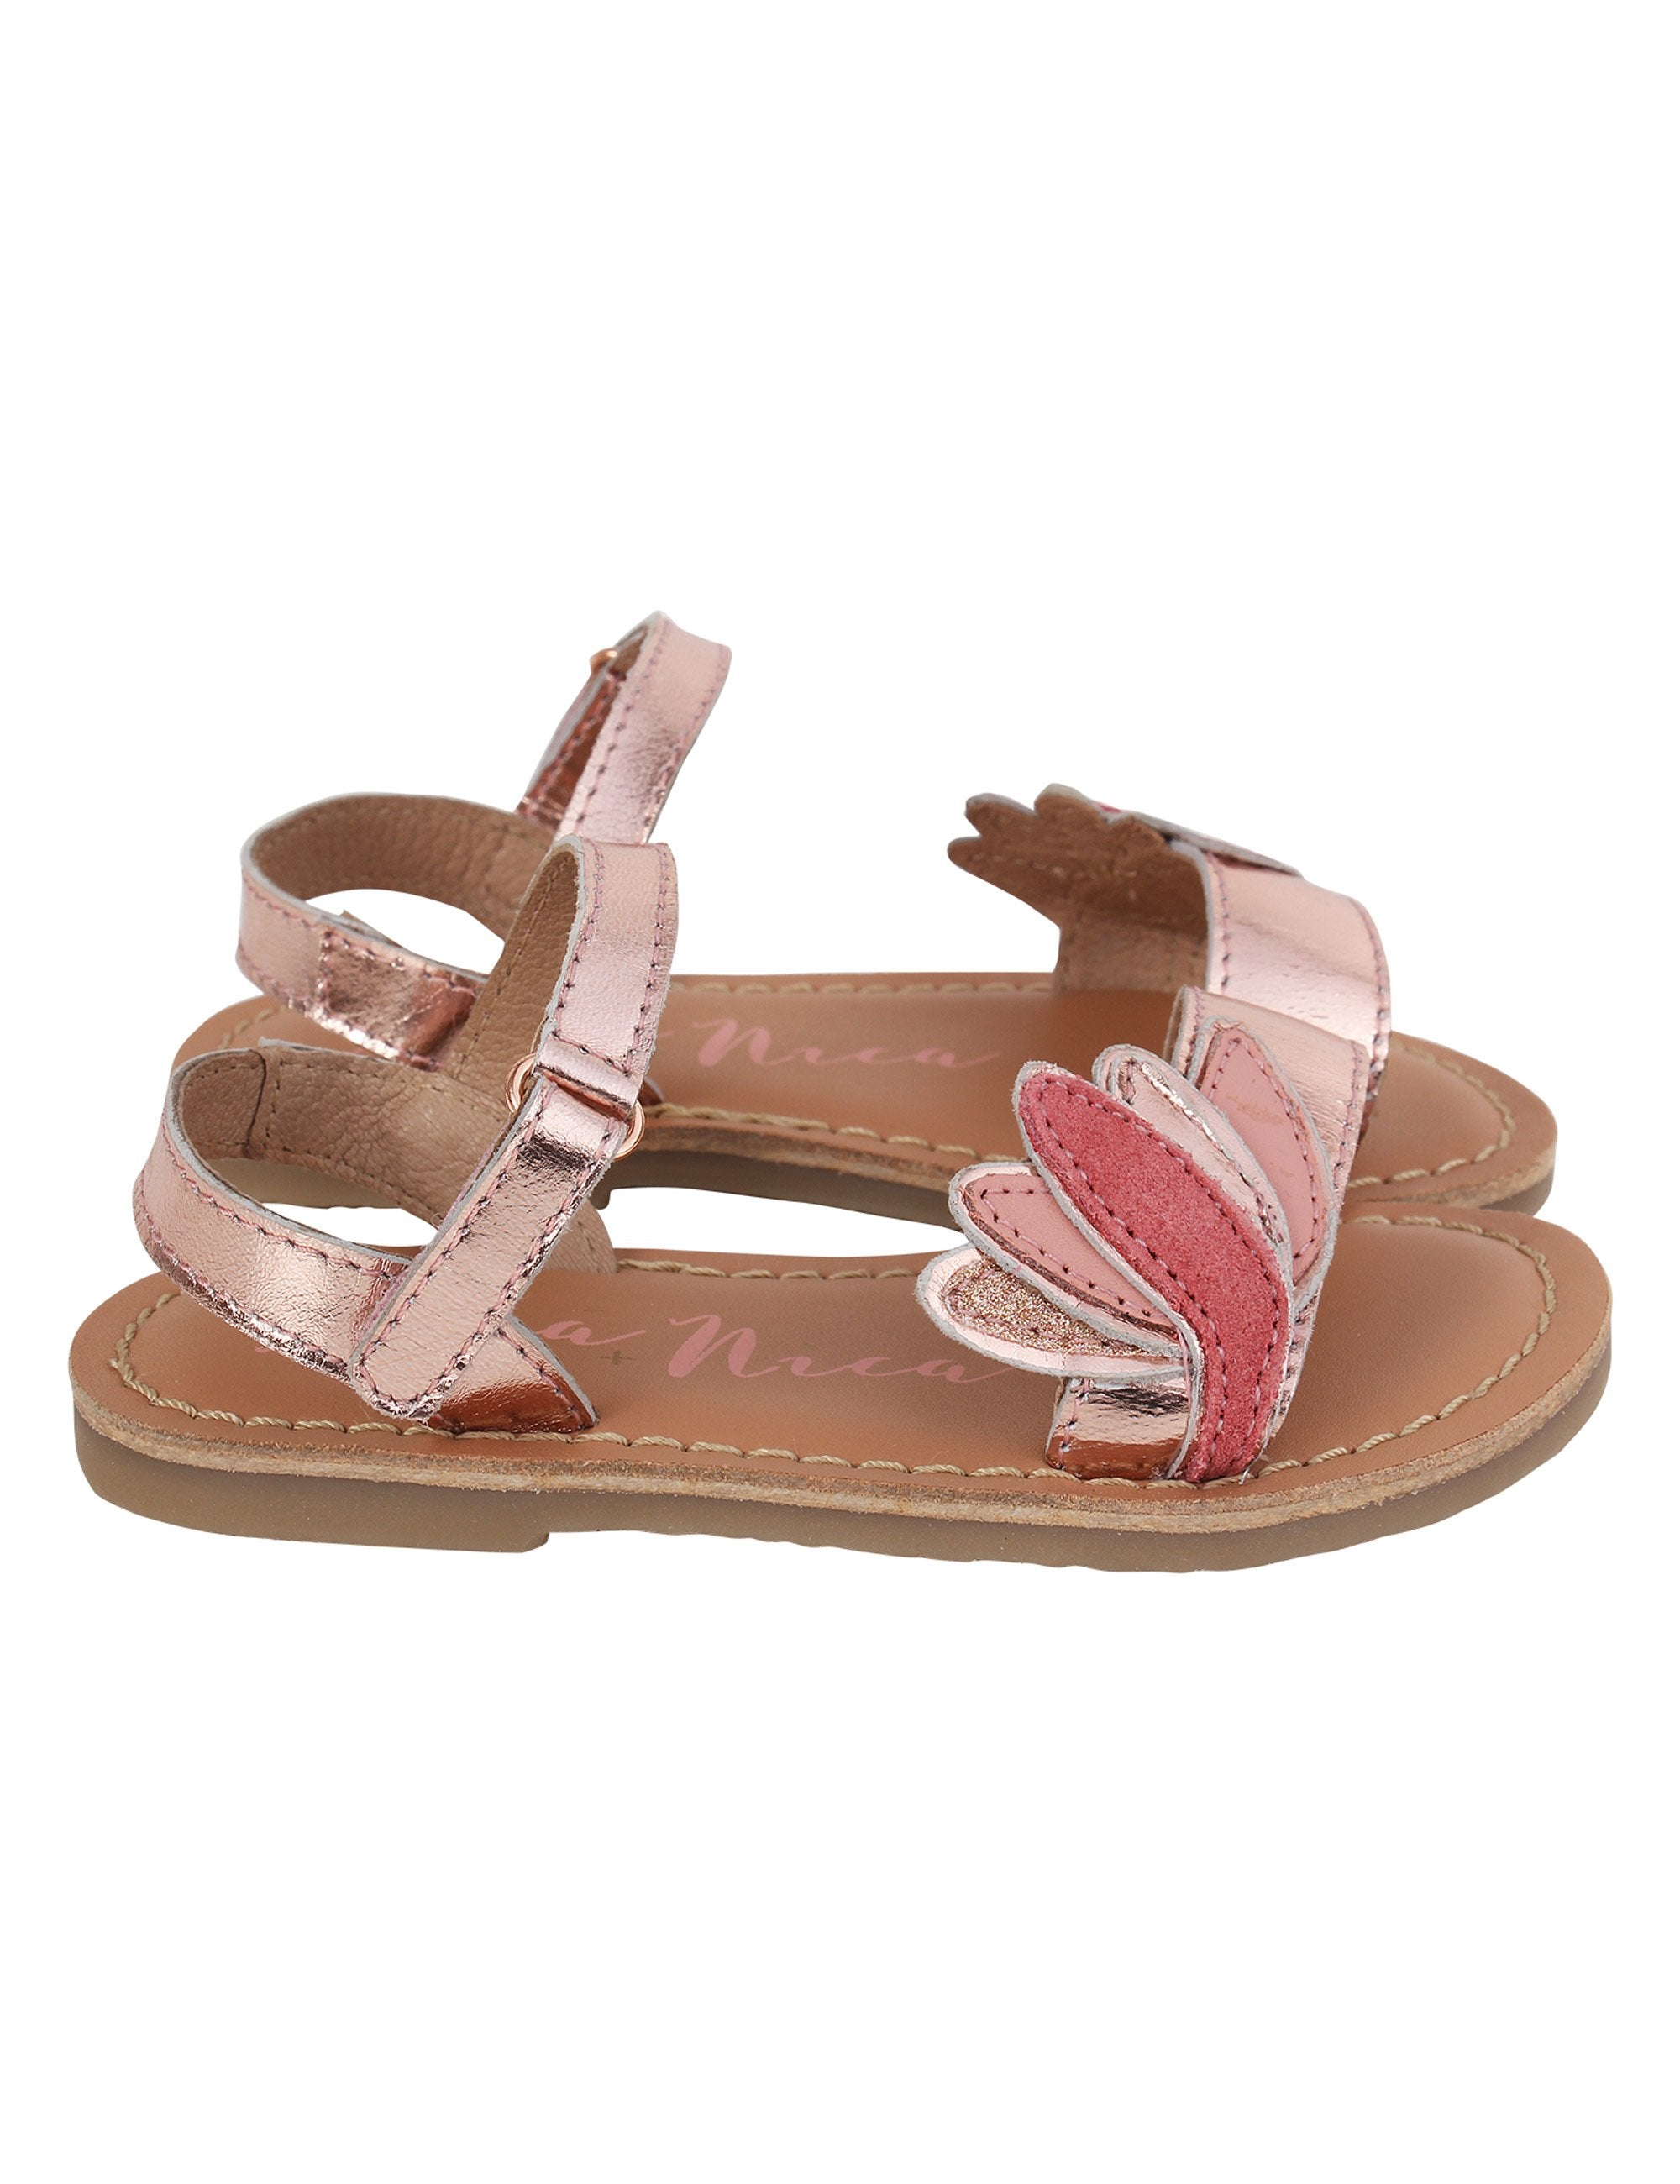 Lotus Flats for Girls in Pink Colour